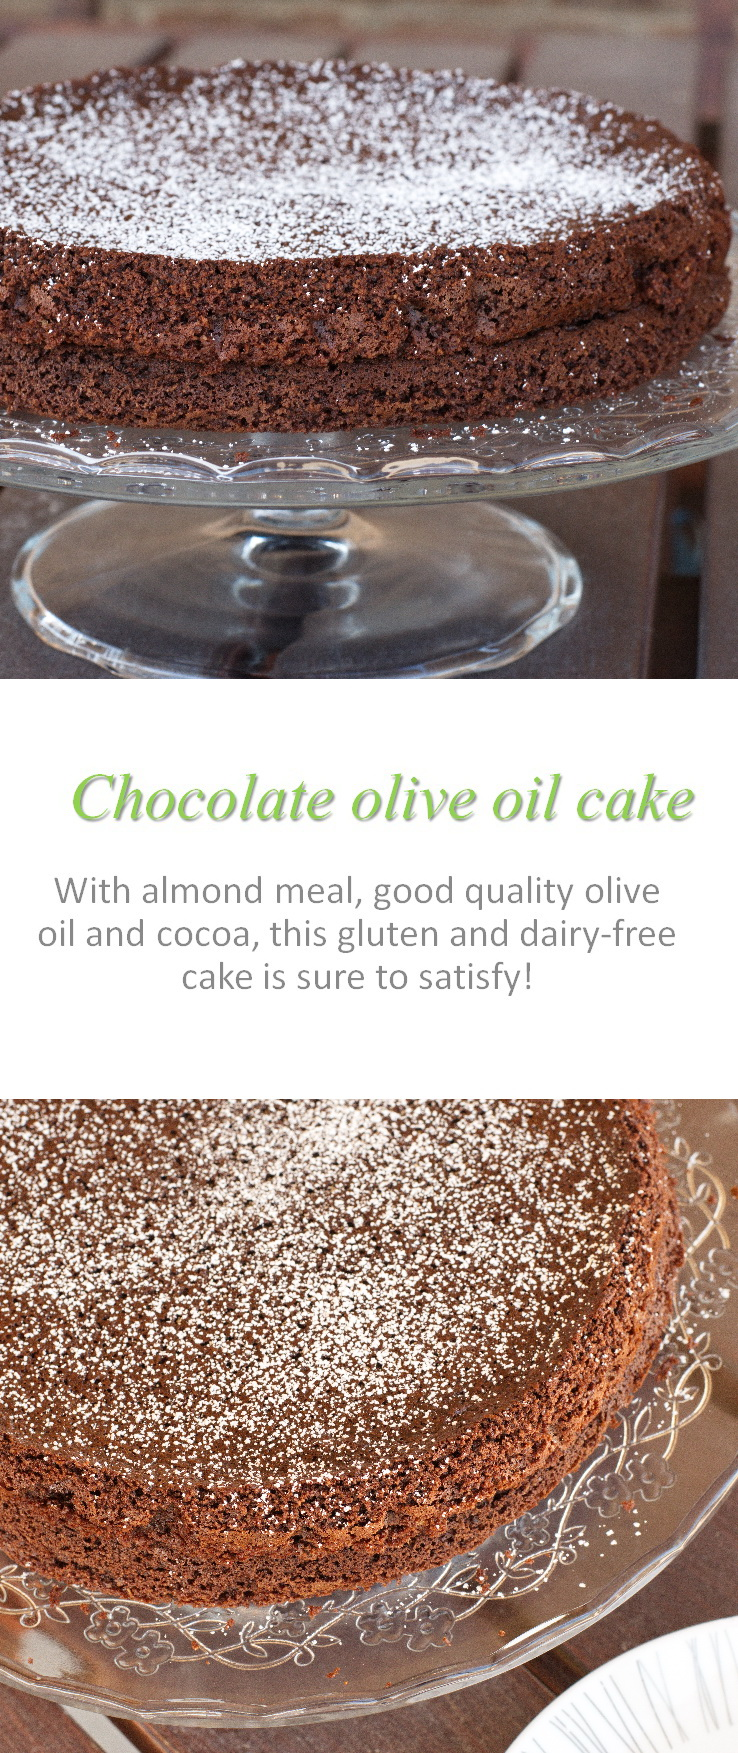 A moist, flourless chocolate cake that is the best one ever made, according to my family! Using olive oil, good quality cocoa and love ...! #flourlesscake #cookathome #glutenfree #dairyfree